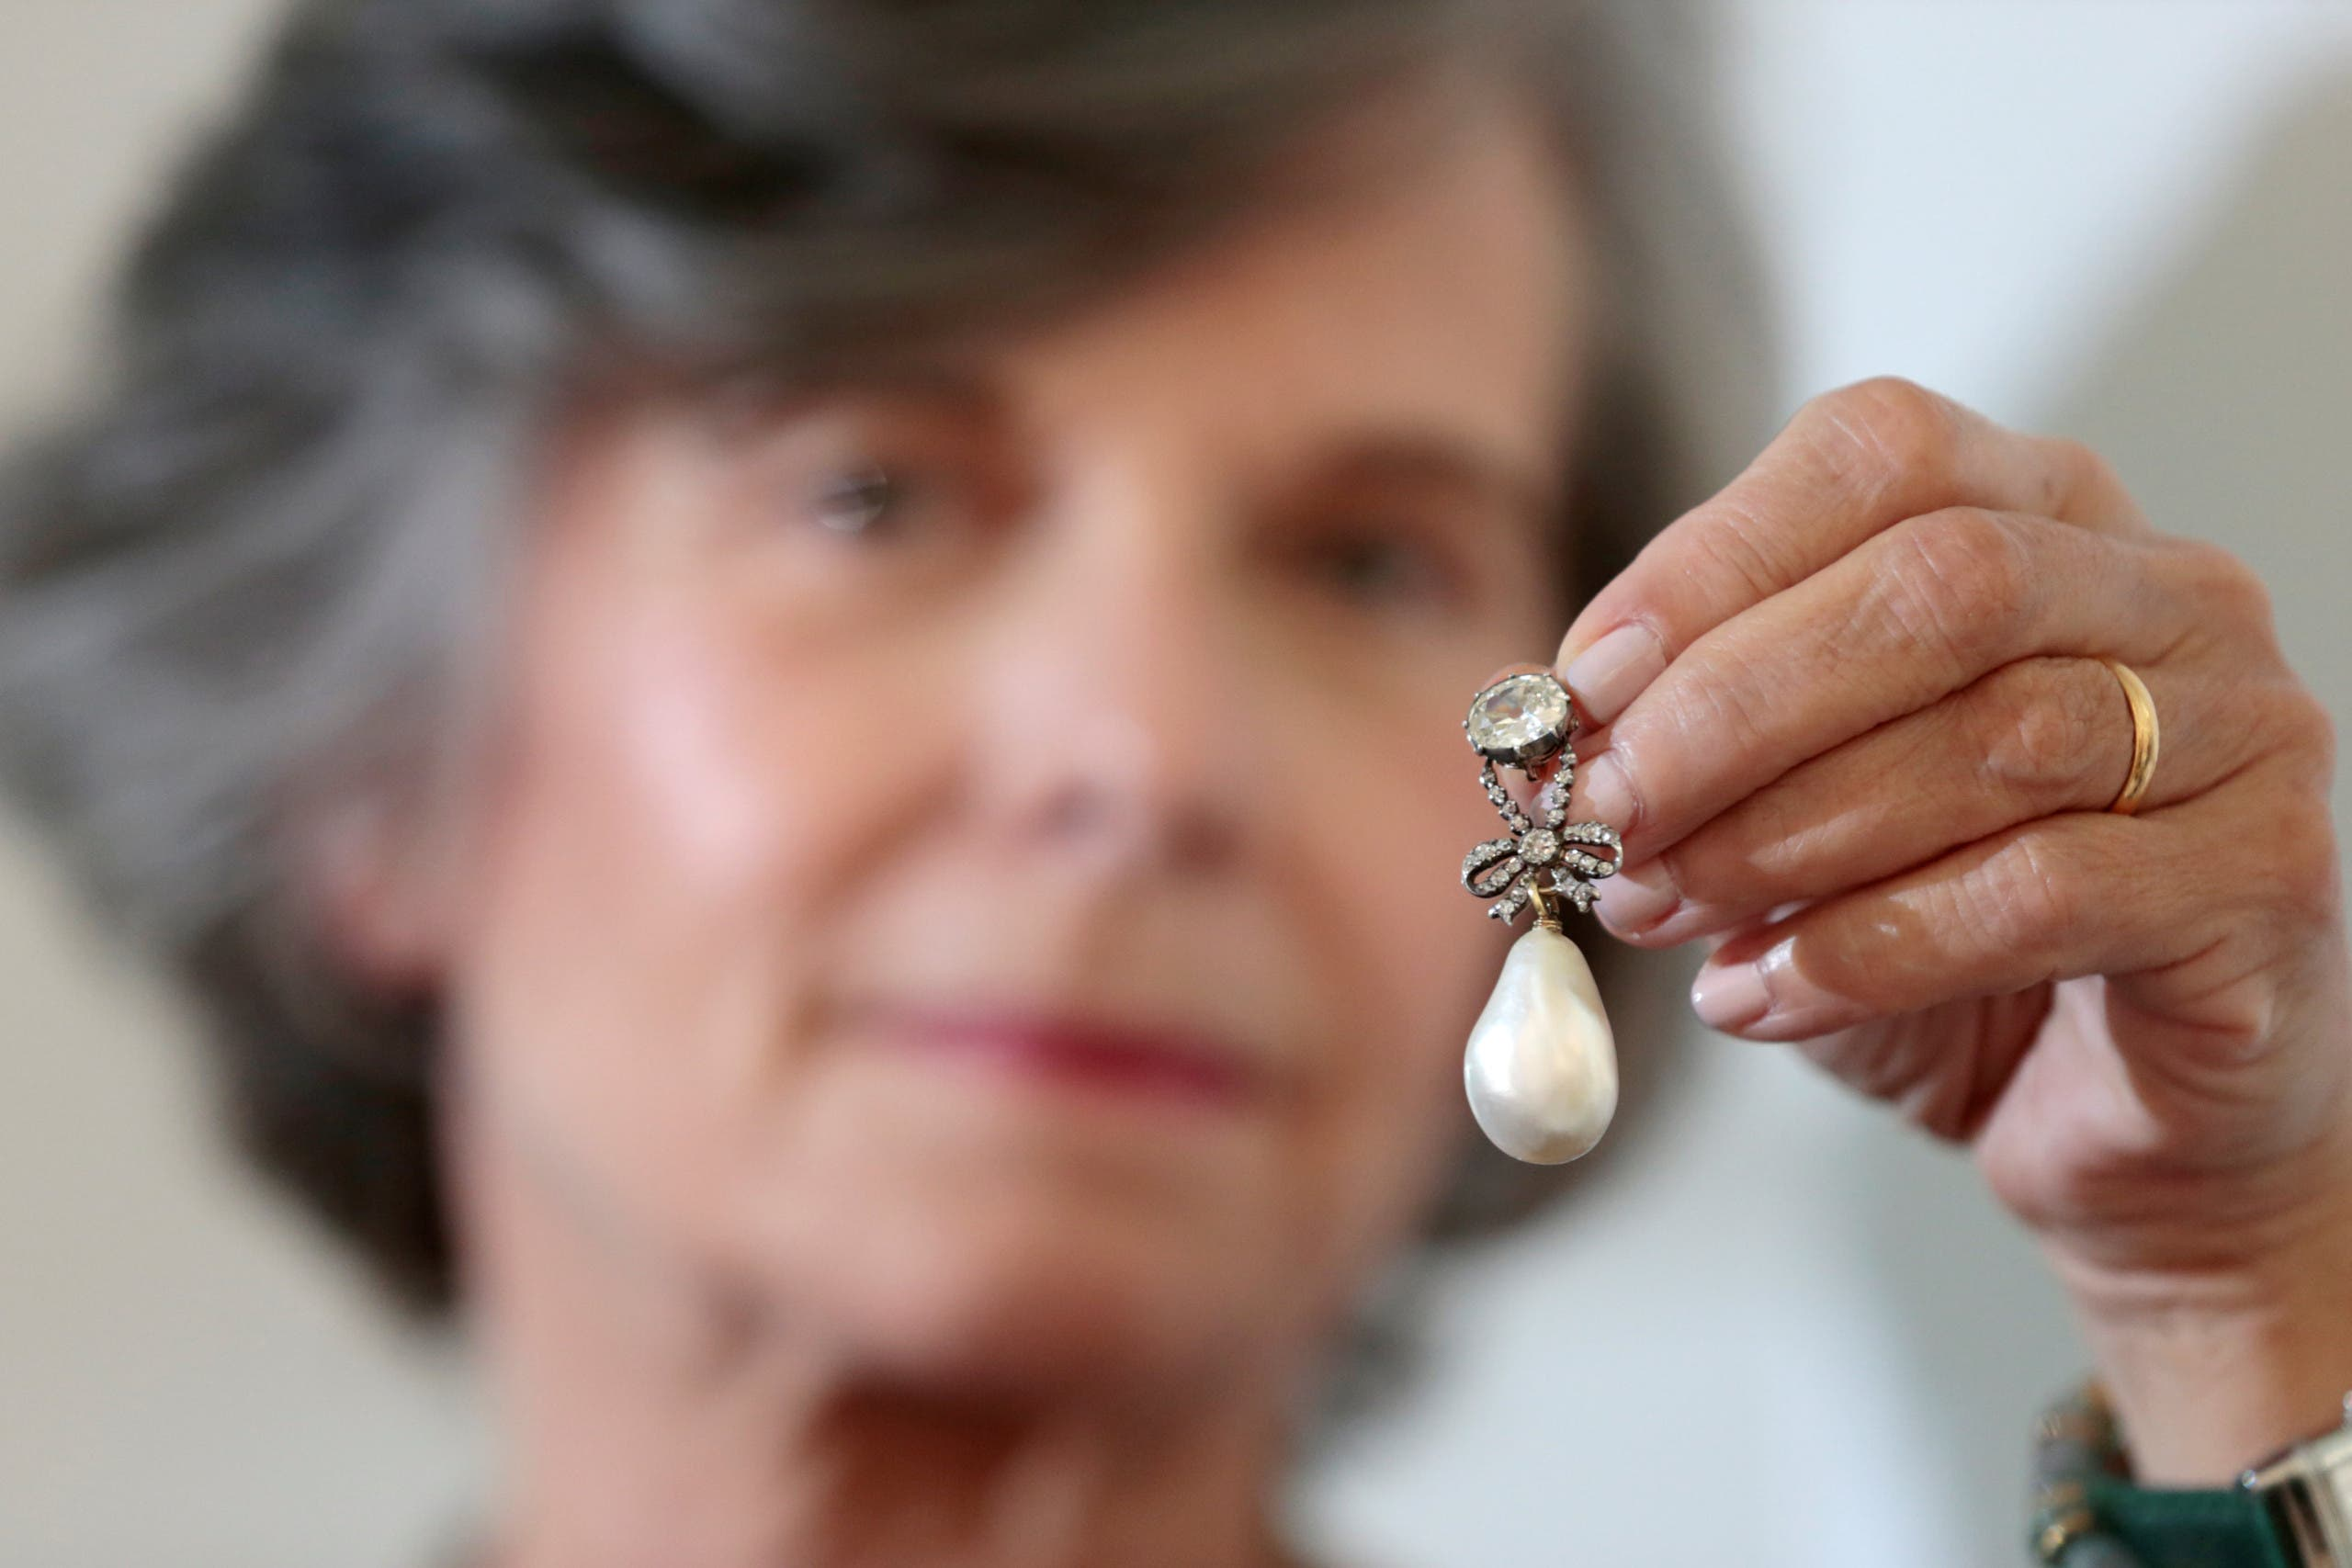 A member of Sotheby's staff holds a pearl and diamond pendant once belonging to Queen Marie Antoinette of France on display at Sotheby's in Dubai on October 9, 2018. (Reuters)